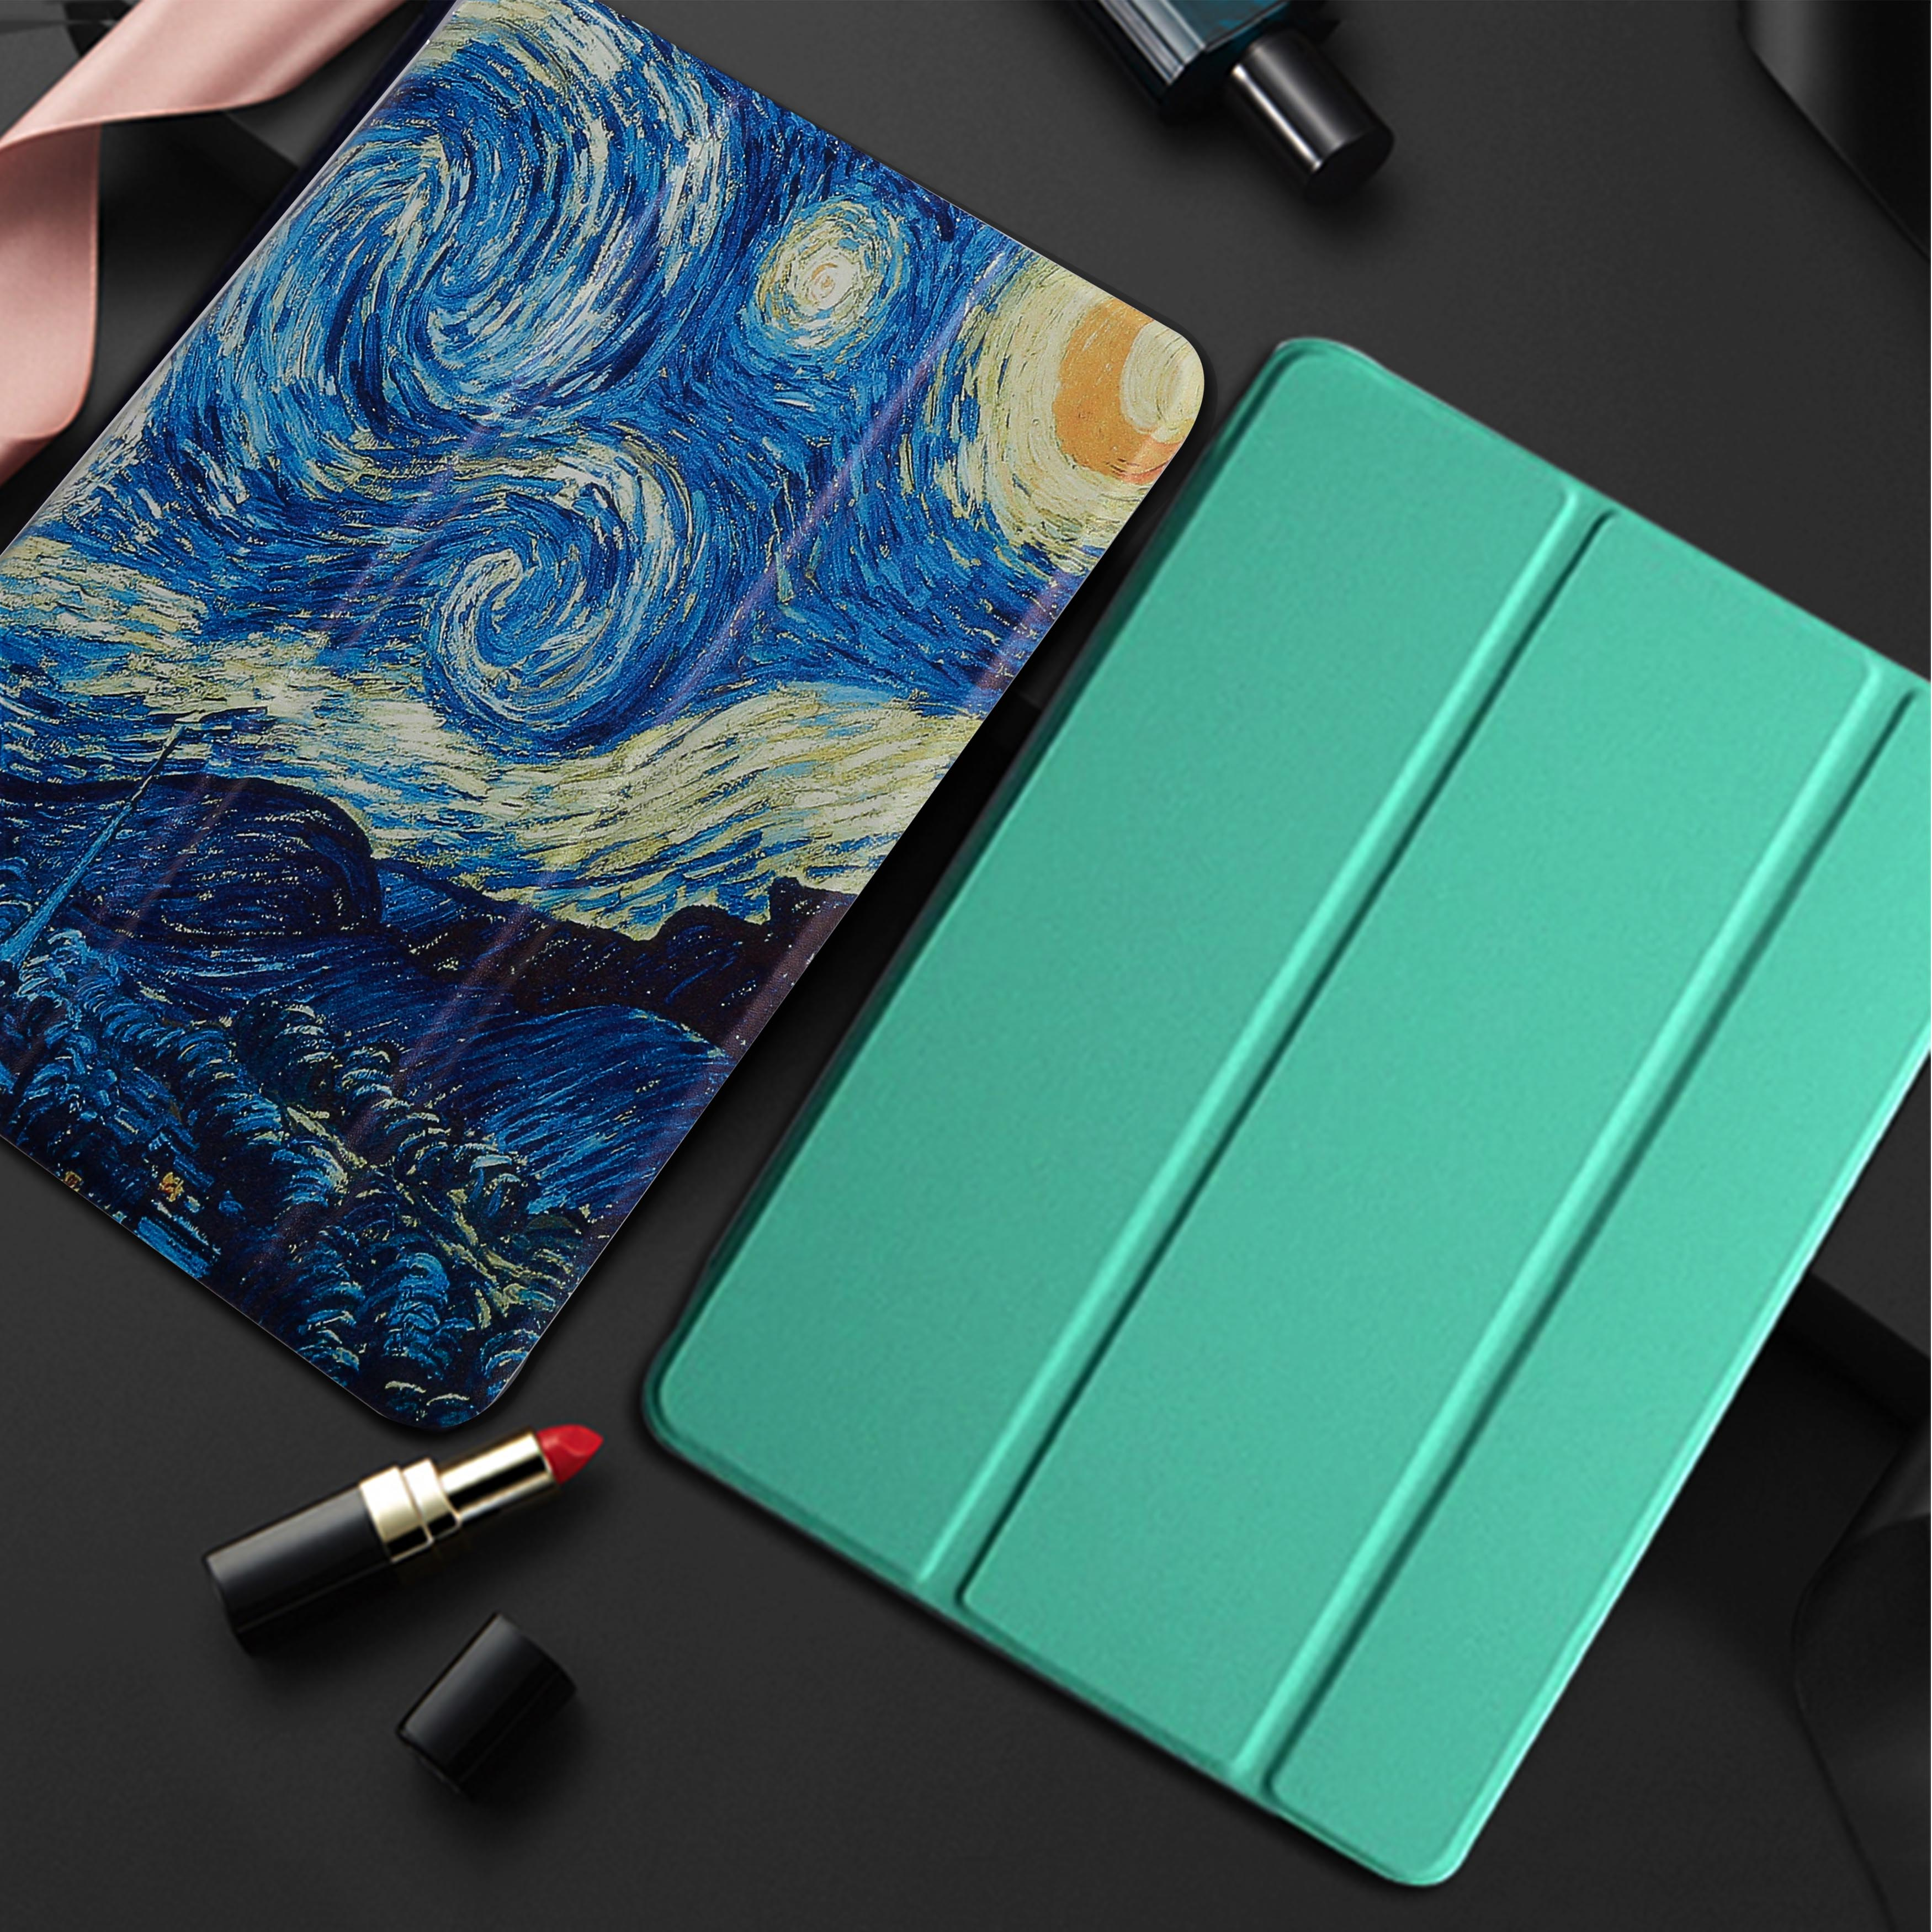 For iPad Air 1 2 9.7 Case PU Leather Stand Fundas For Air 3 10.5 inch (3rd Gen) 2019 A1474 A1566 Auto Sleep Smart Folio Cover image